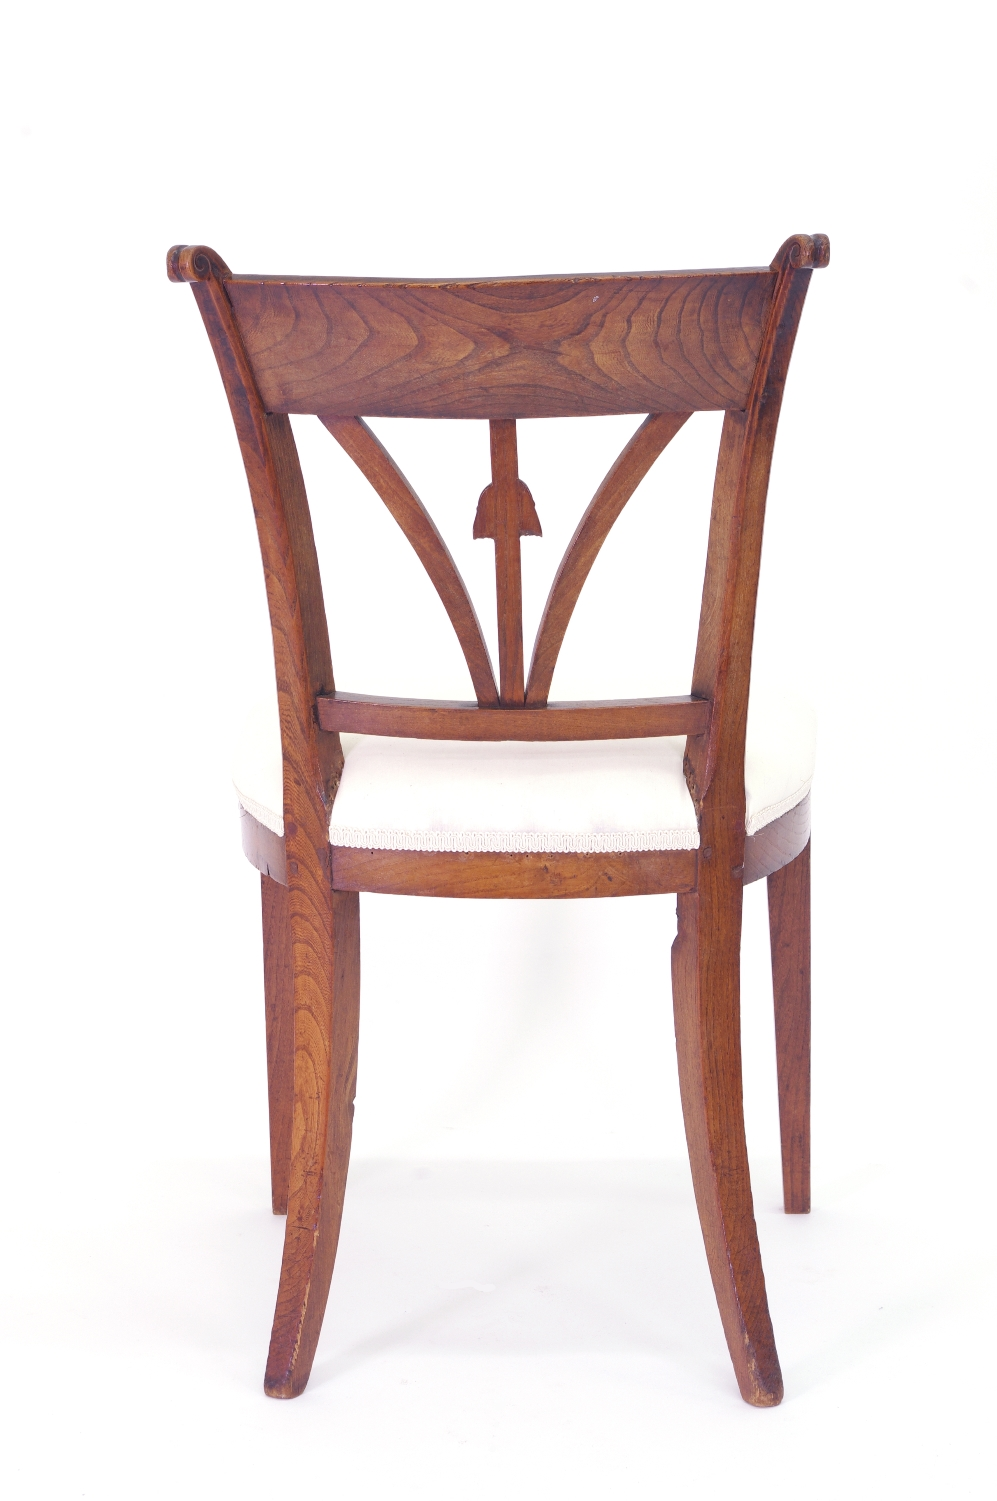 View 7: Set of Four Italian Side Chairs, c. 1800